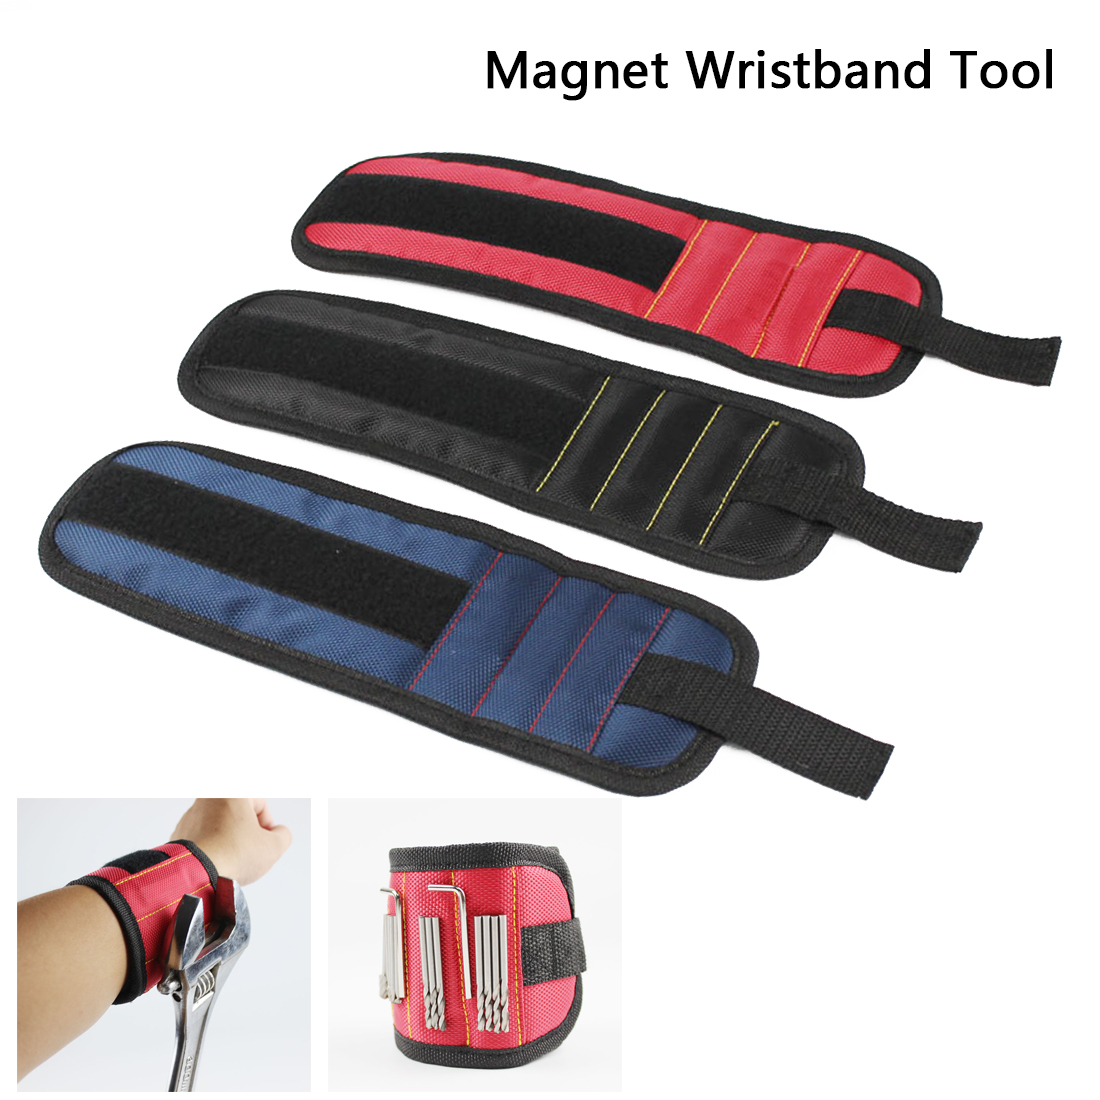 Magnetic Wristband Pocket Wrist Support Tool Bag Pouch Bag Screws Drill Holder Holding Electrician Tools Bag For Holding Screws